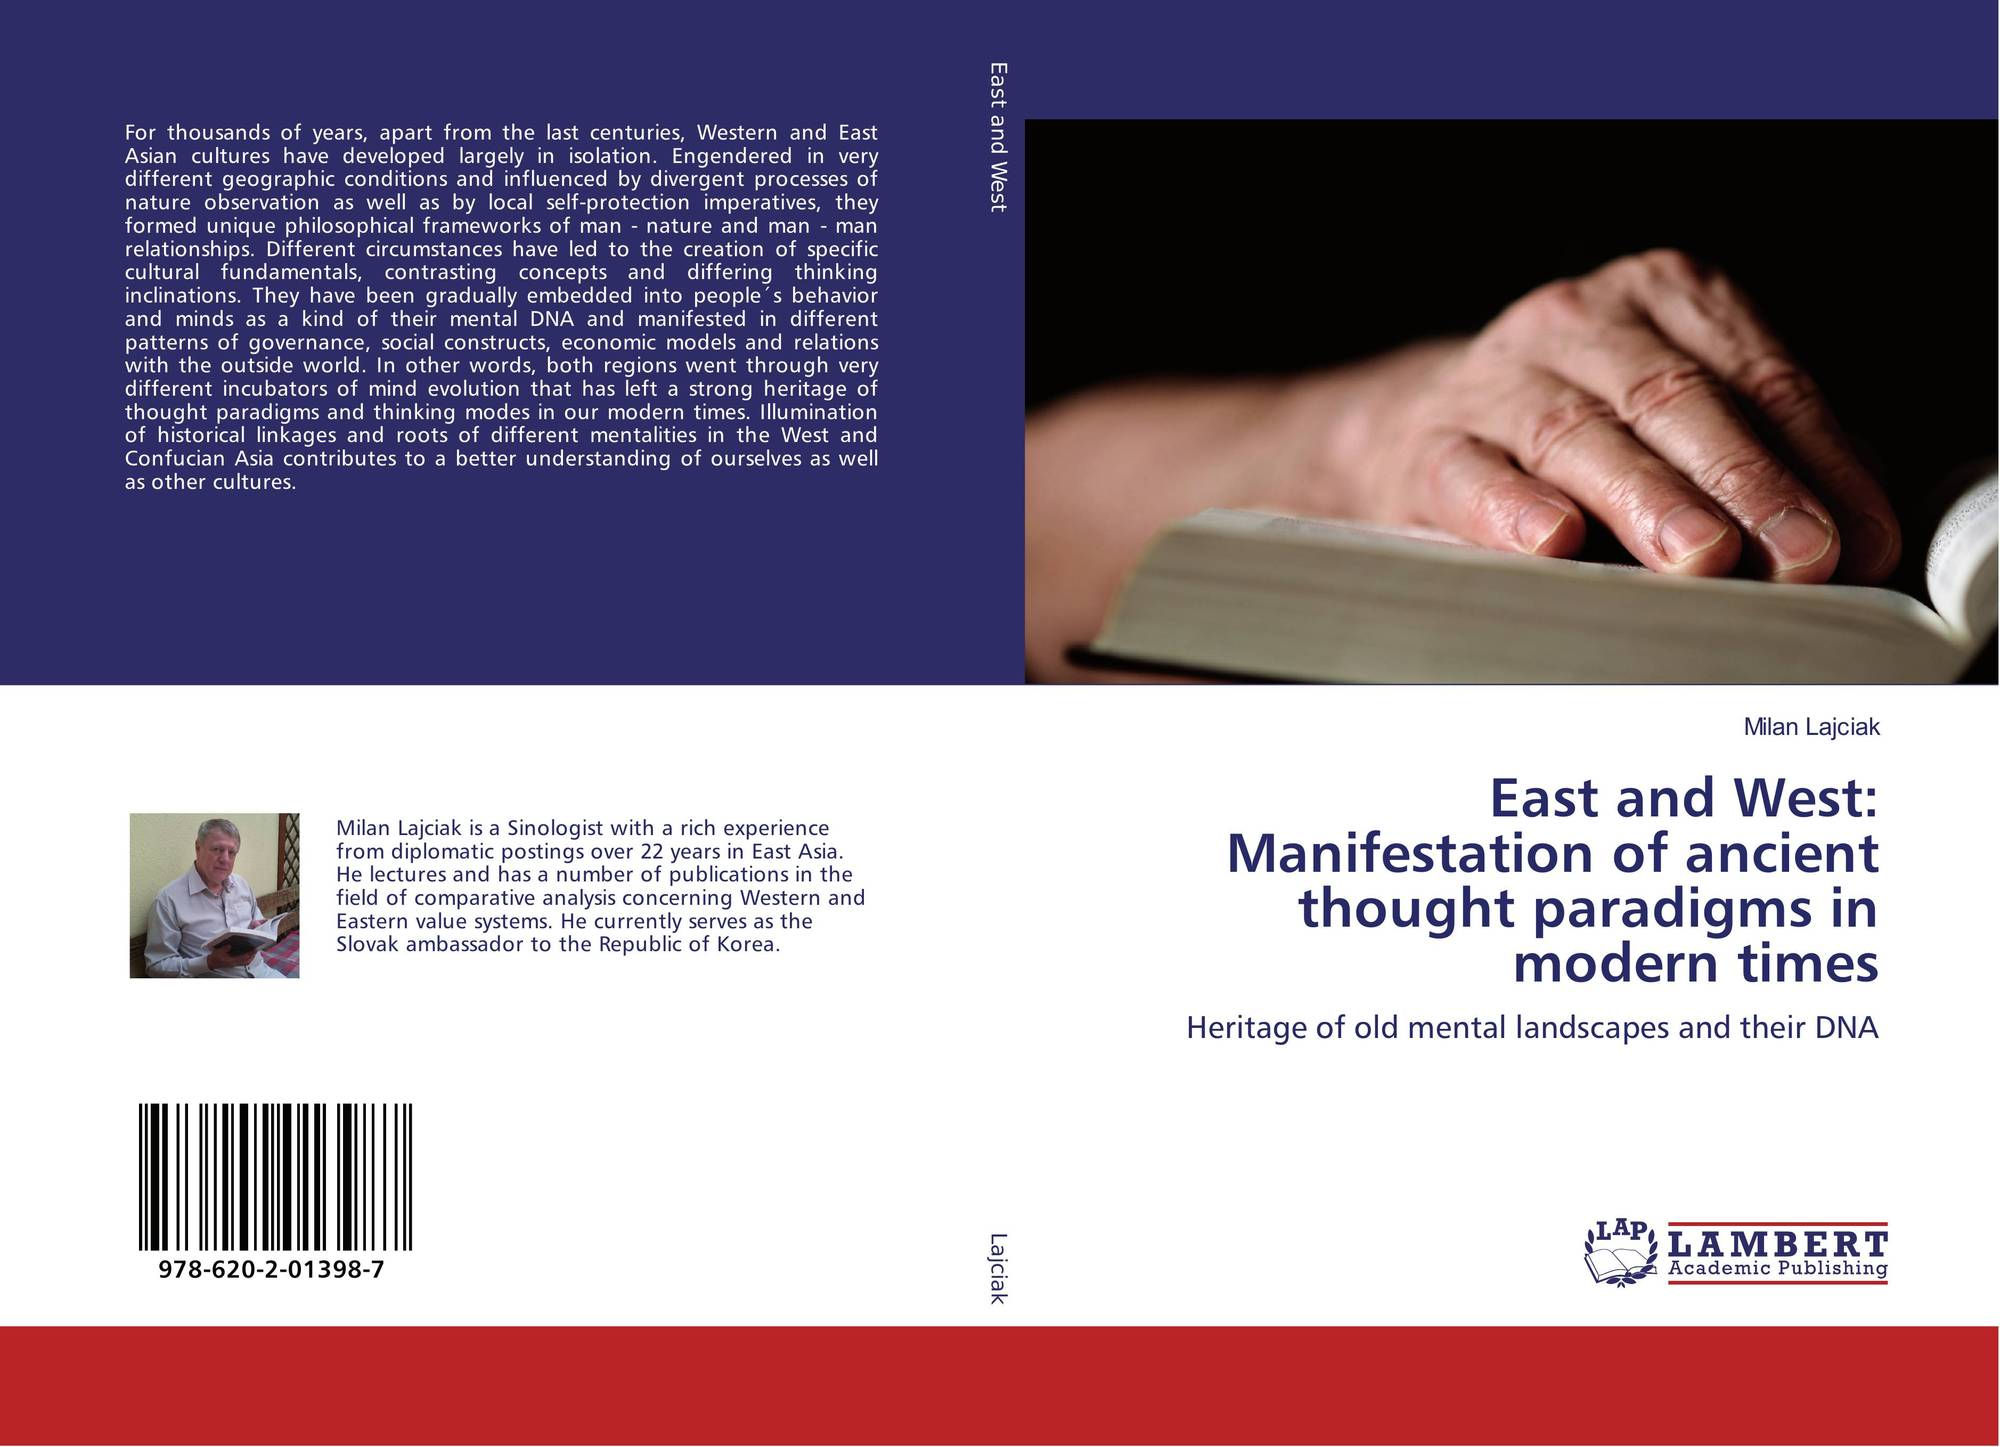 an analysis of the concept of family in ancient times and modern world A theoretical analysis with implications for  pursue our ''quest for purpose in the modern world'' (handy, 1999)  and scientists from the ancient time.